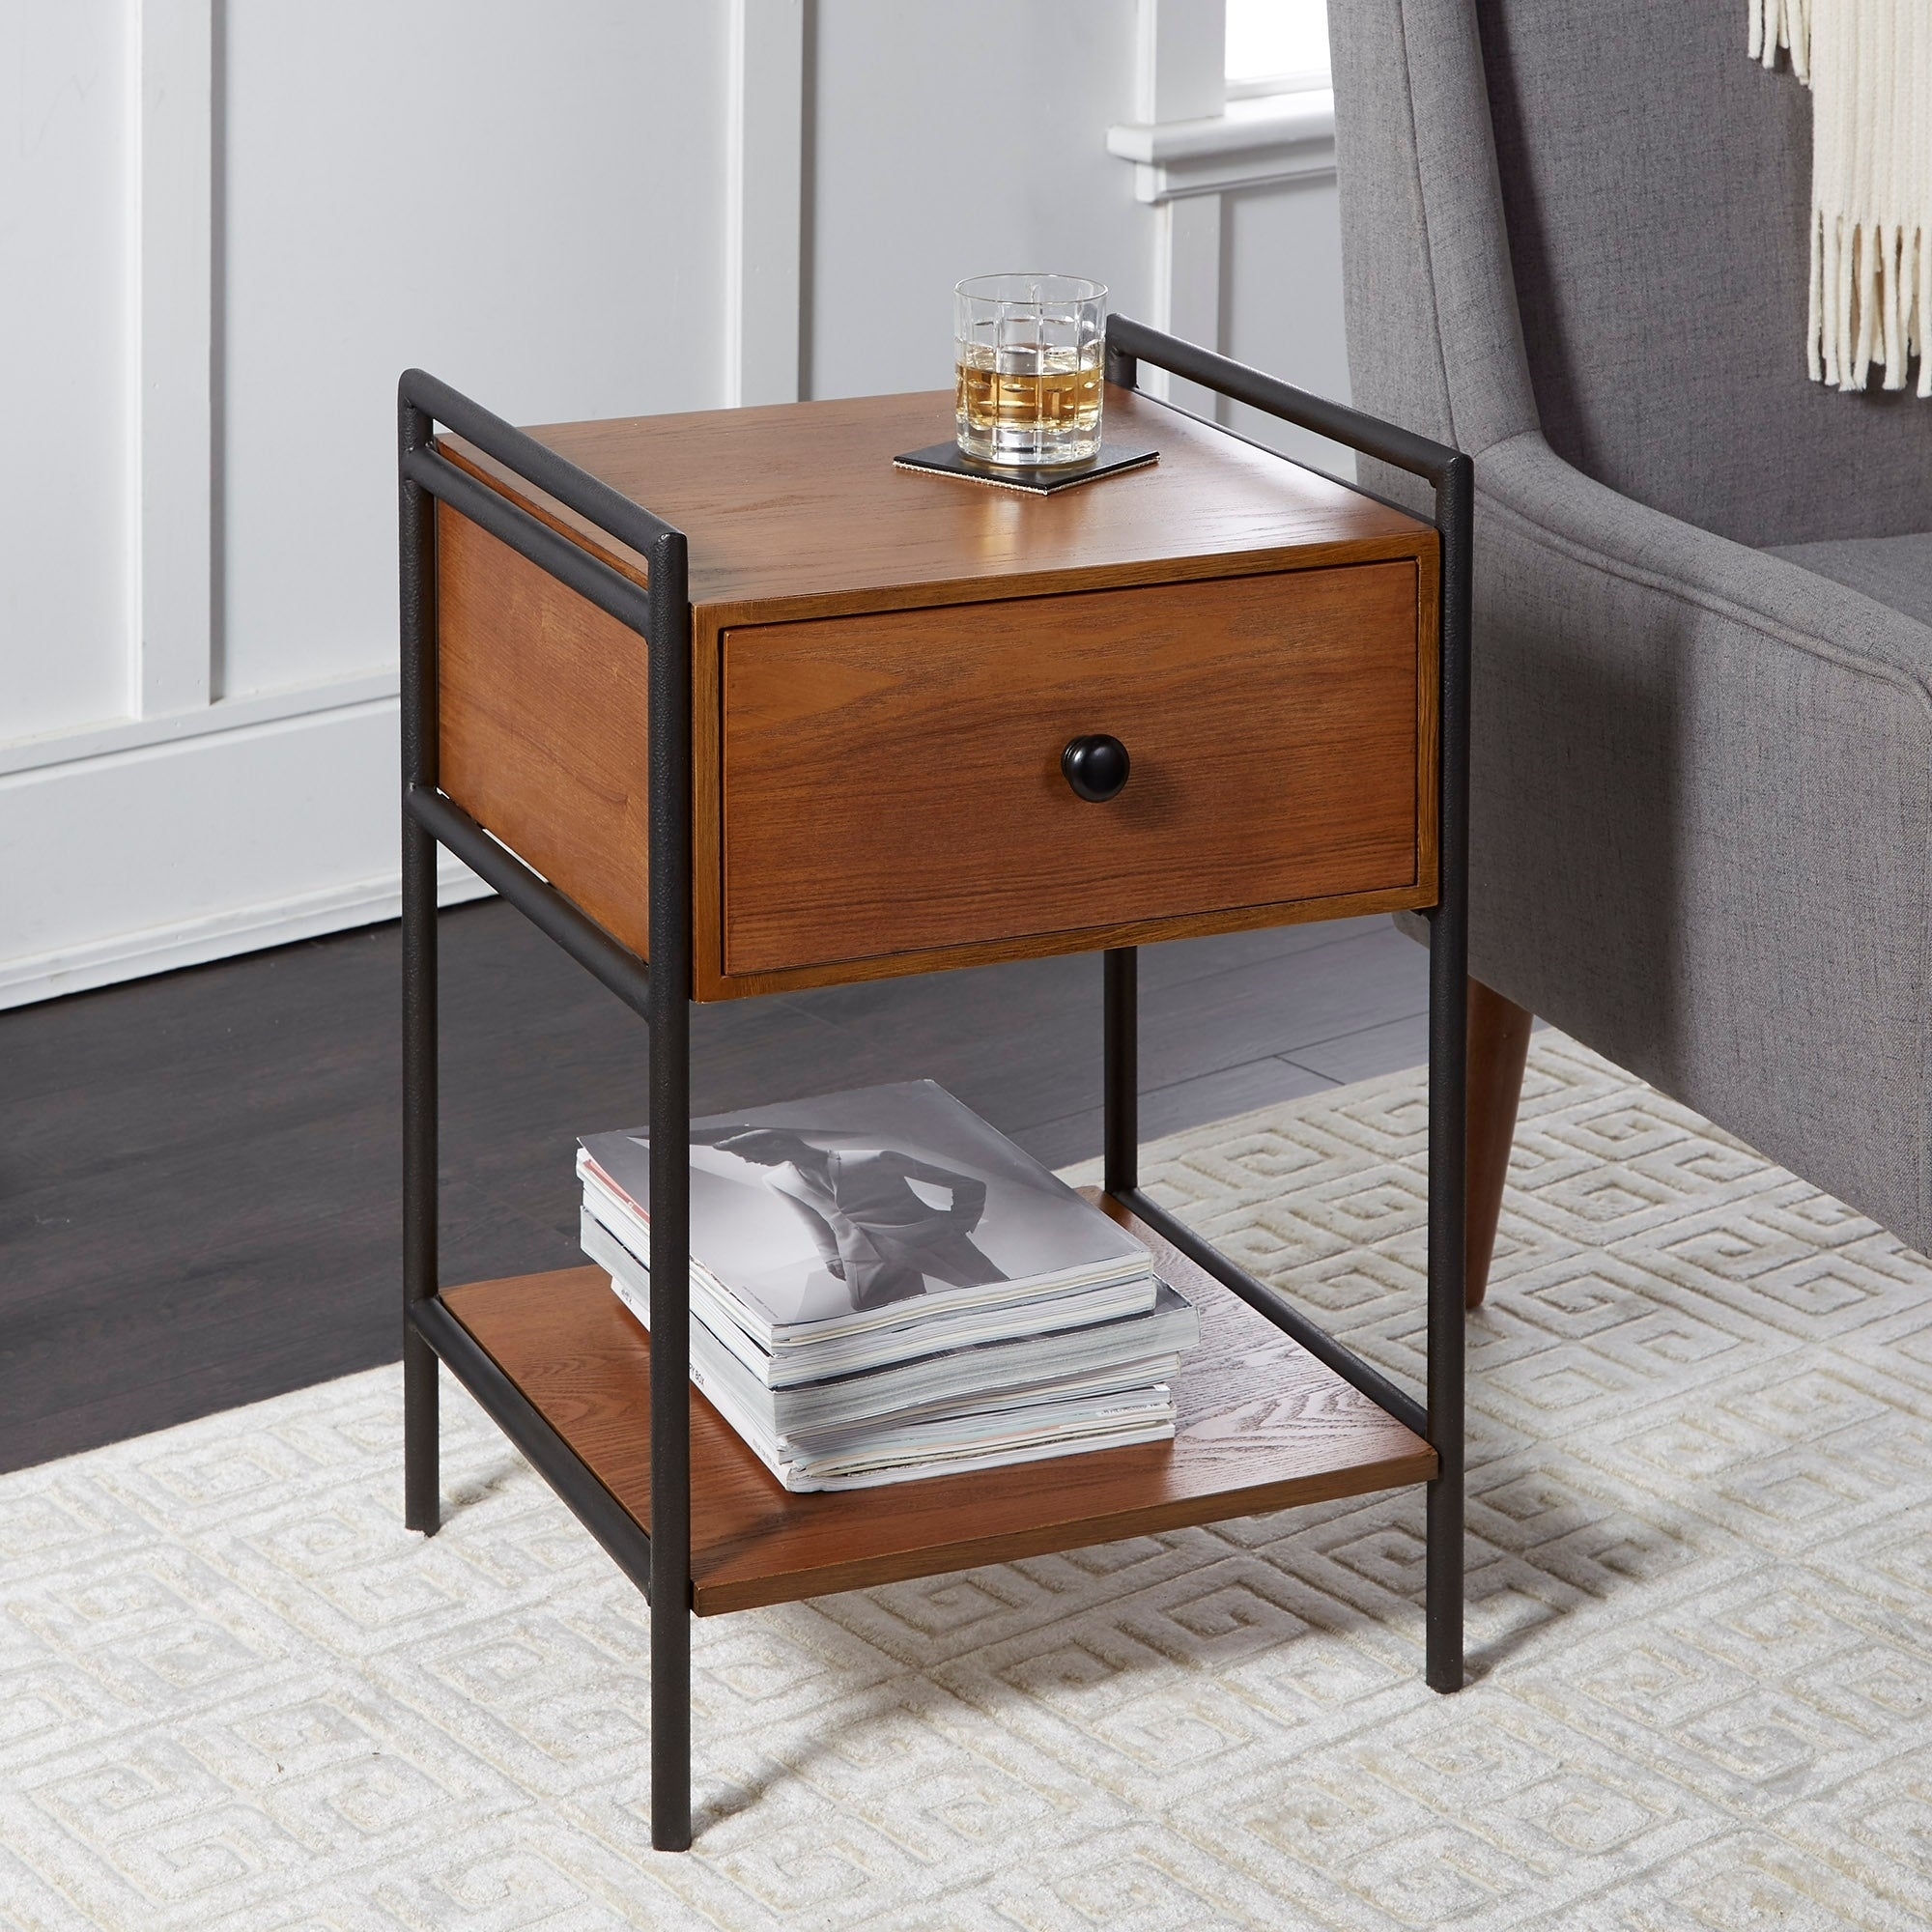 - Shop Rebekah Farmhouse Industrial Accent Table With Drawer